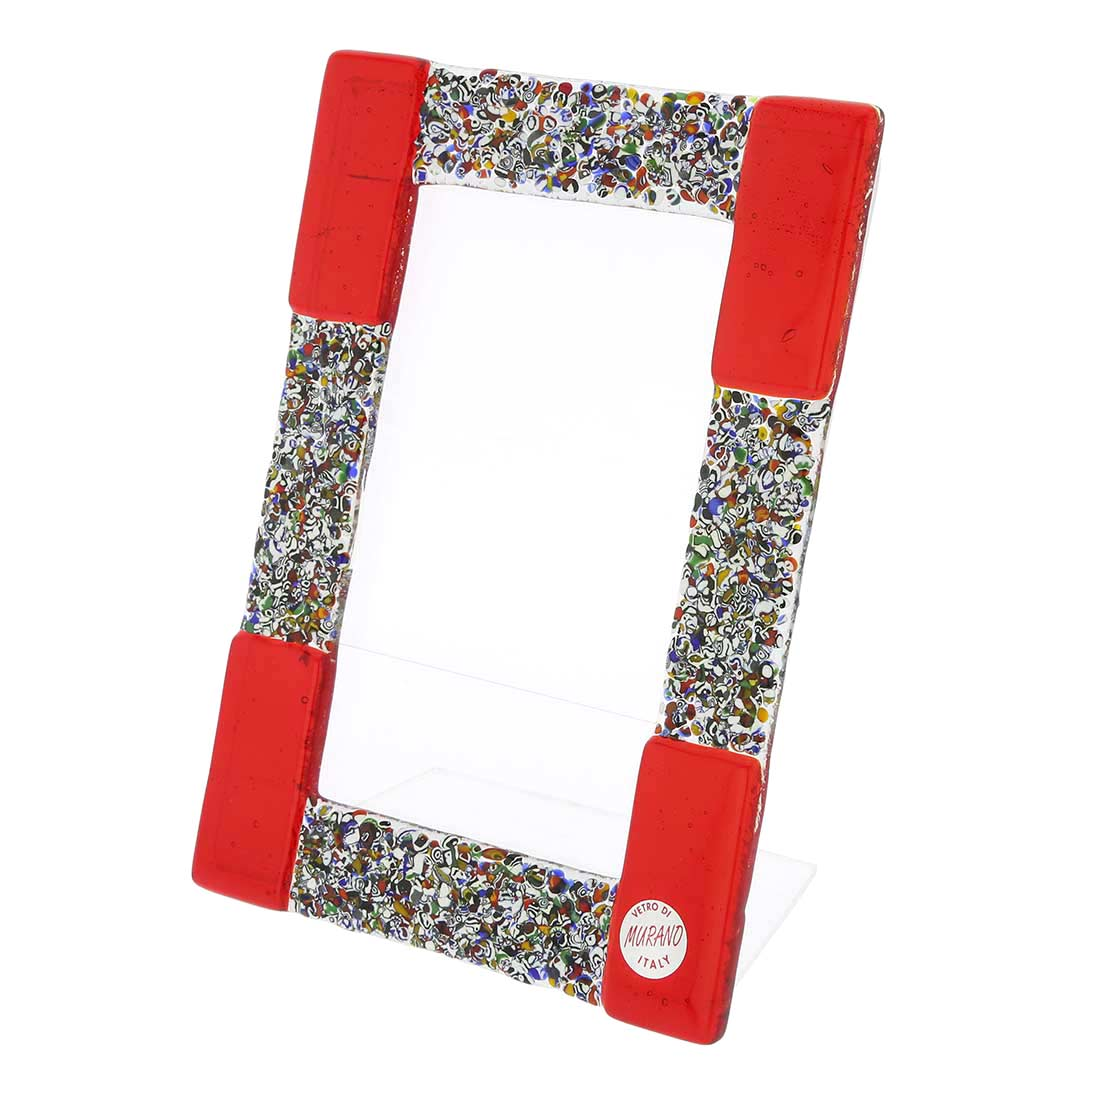 Murano Klimt Photo Frame - Red Small